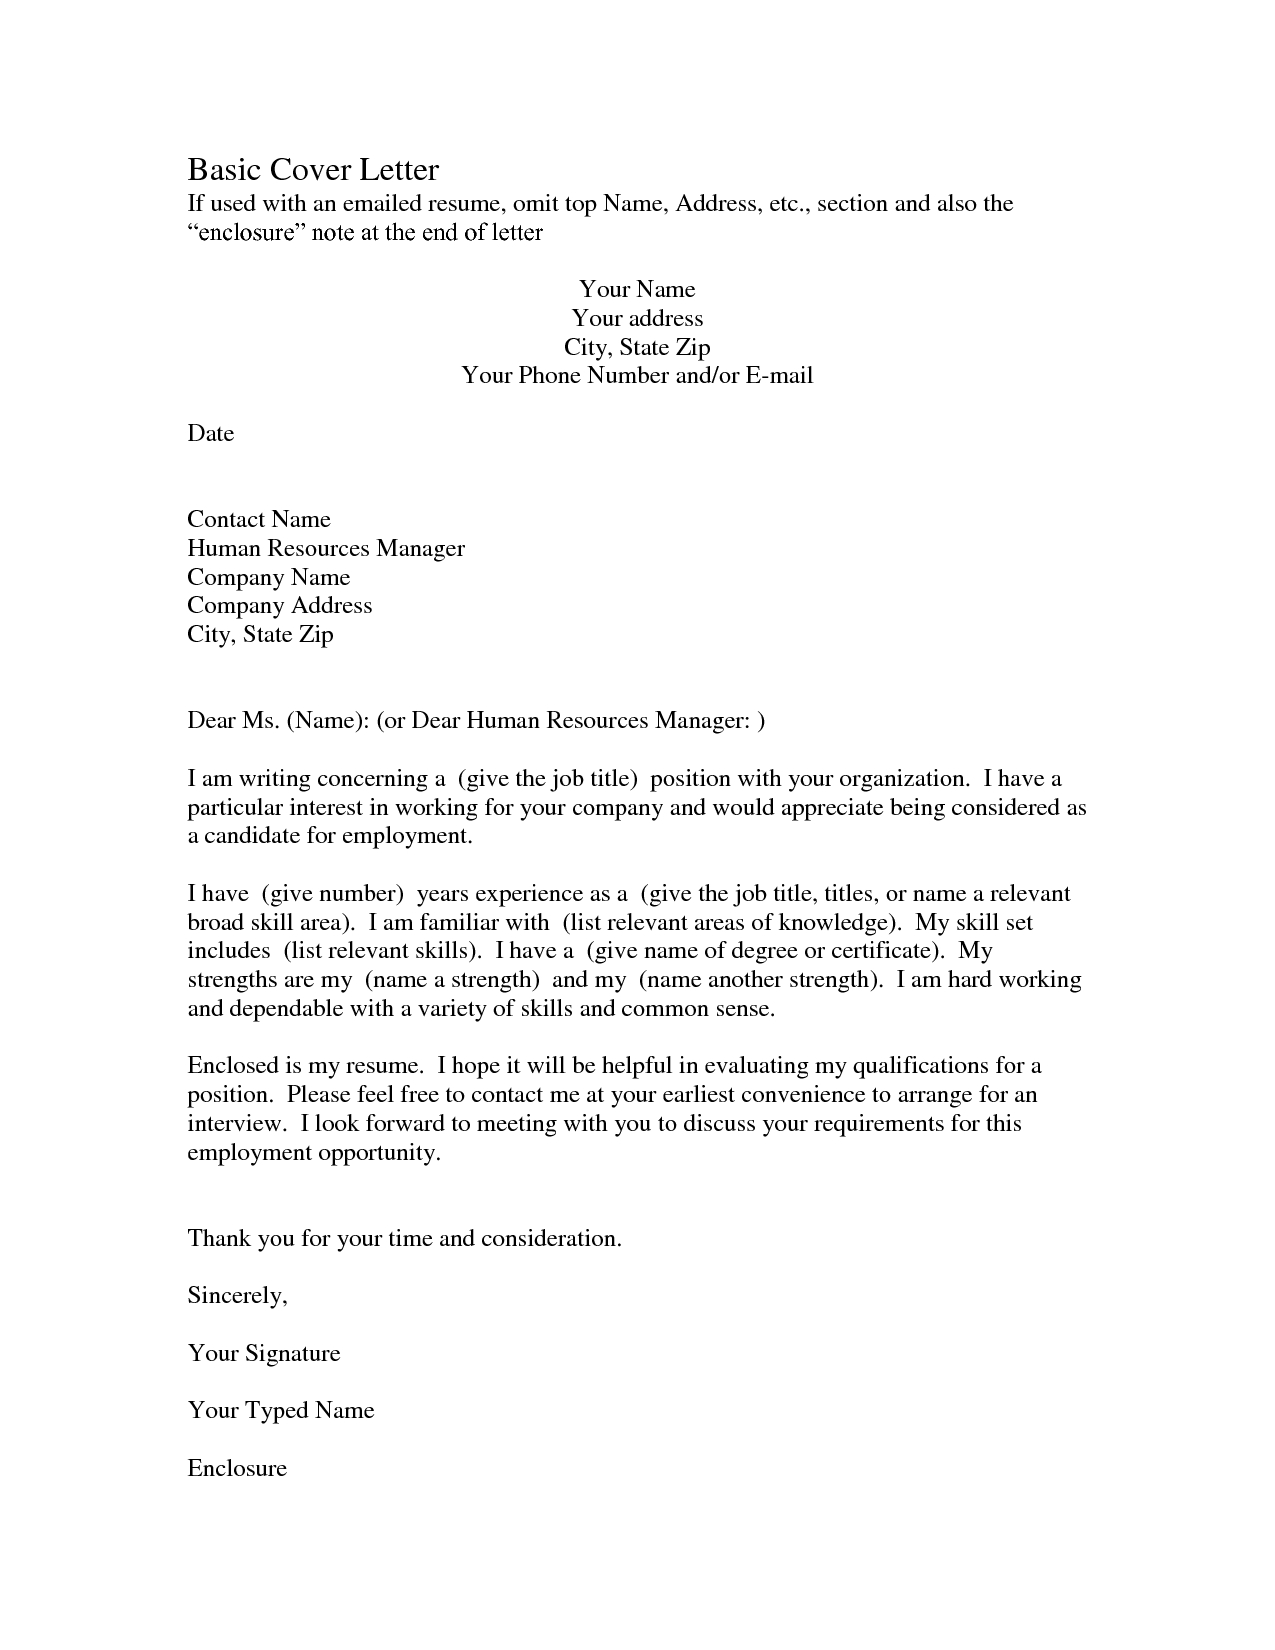 Employee Relocation Letter Template - This Cover Letter Sample Shows How A Resumes for Teachers Can Help